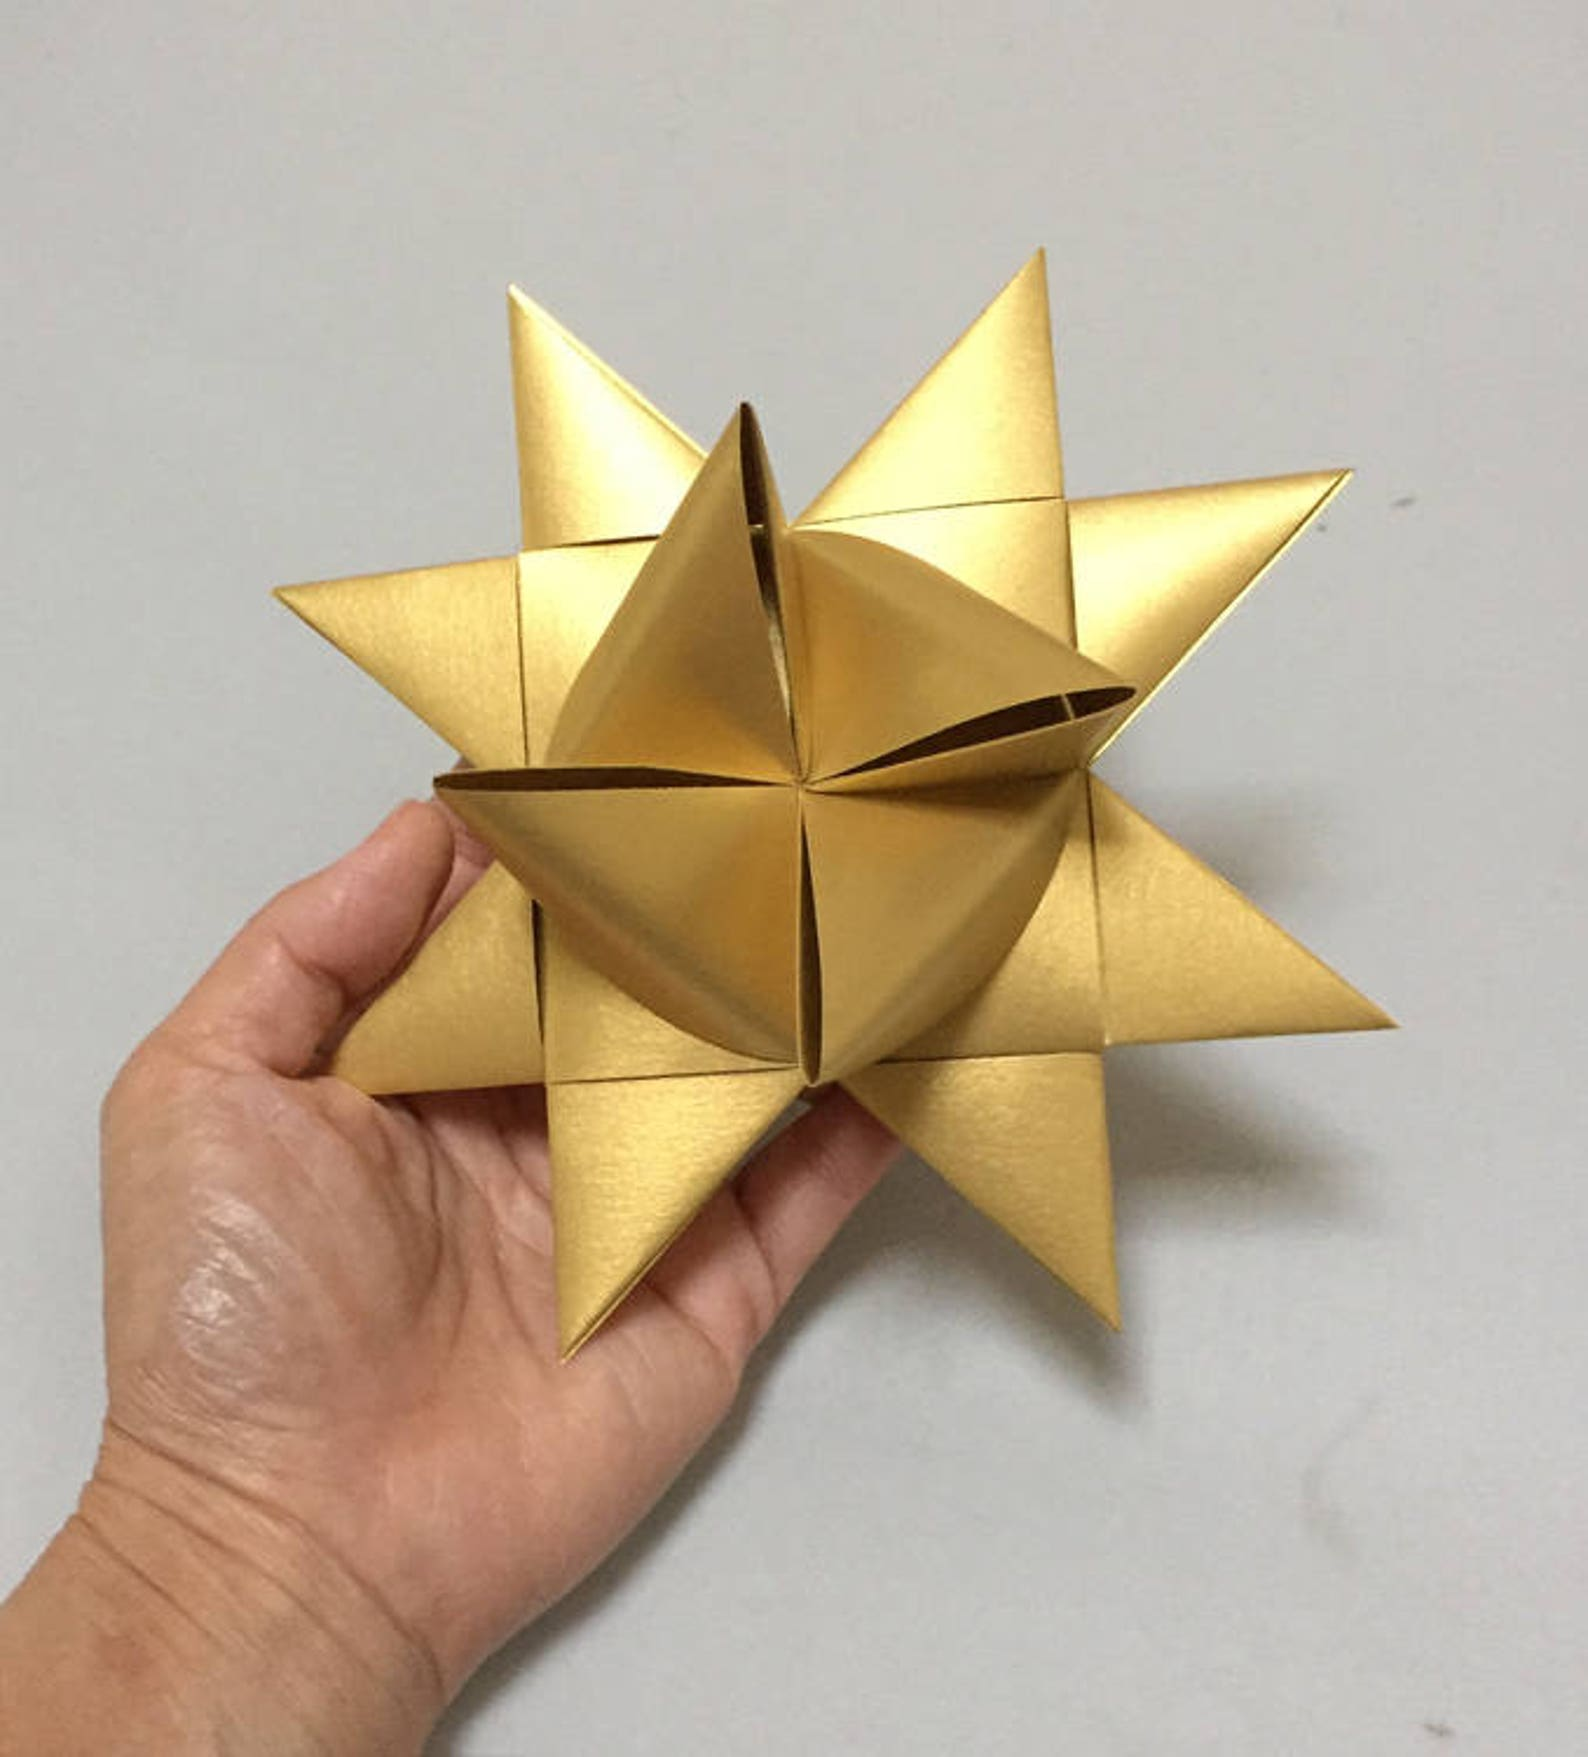 Large Moravian Stars: 5.5 to 6 inches in size, Metallic Gold in Color. Sold individually